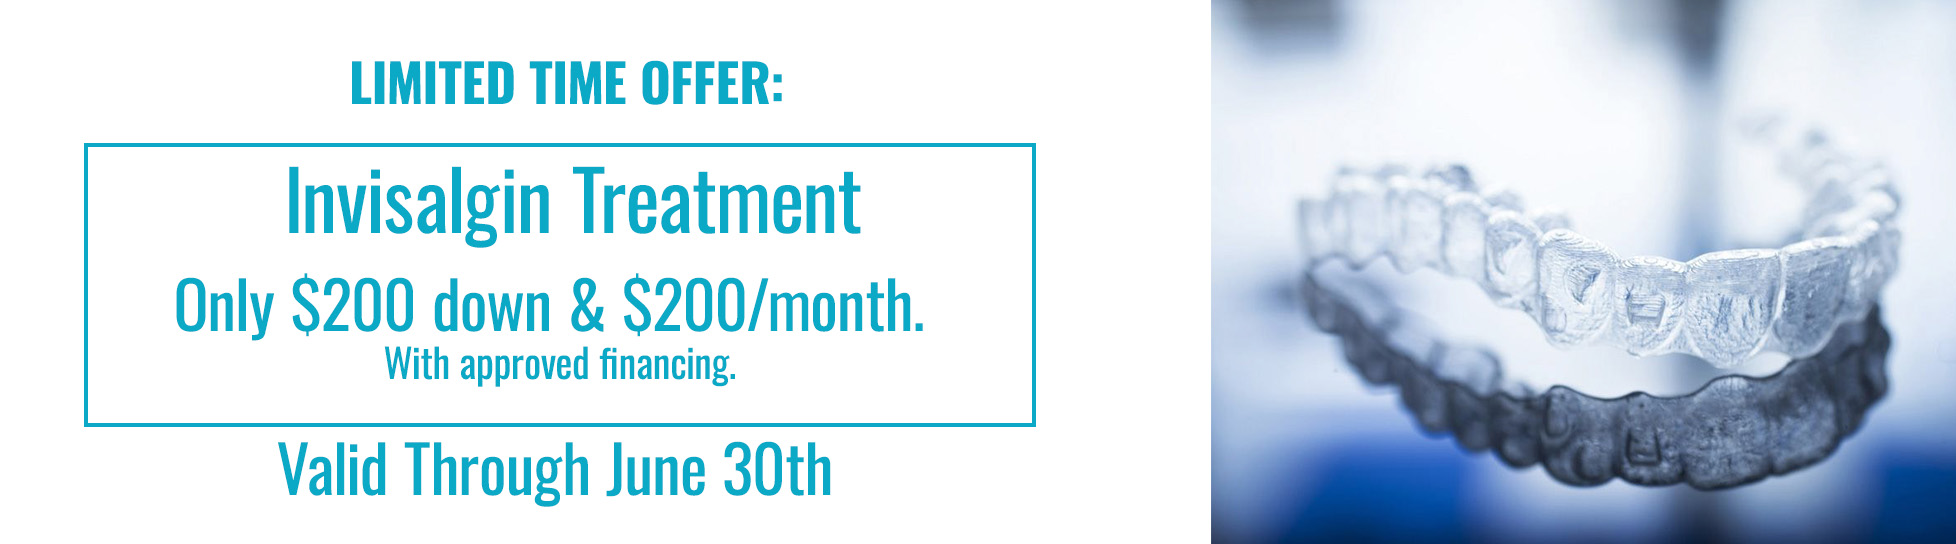 Limited Time Offer Invisalign Treatment Cheap